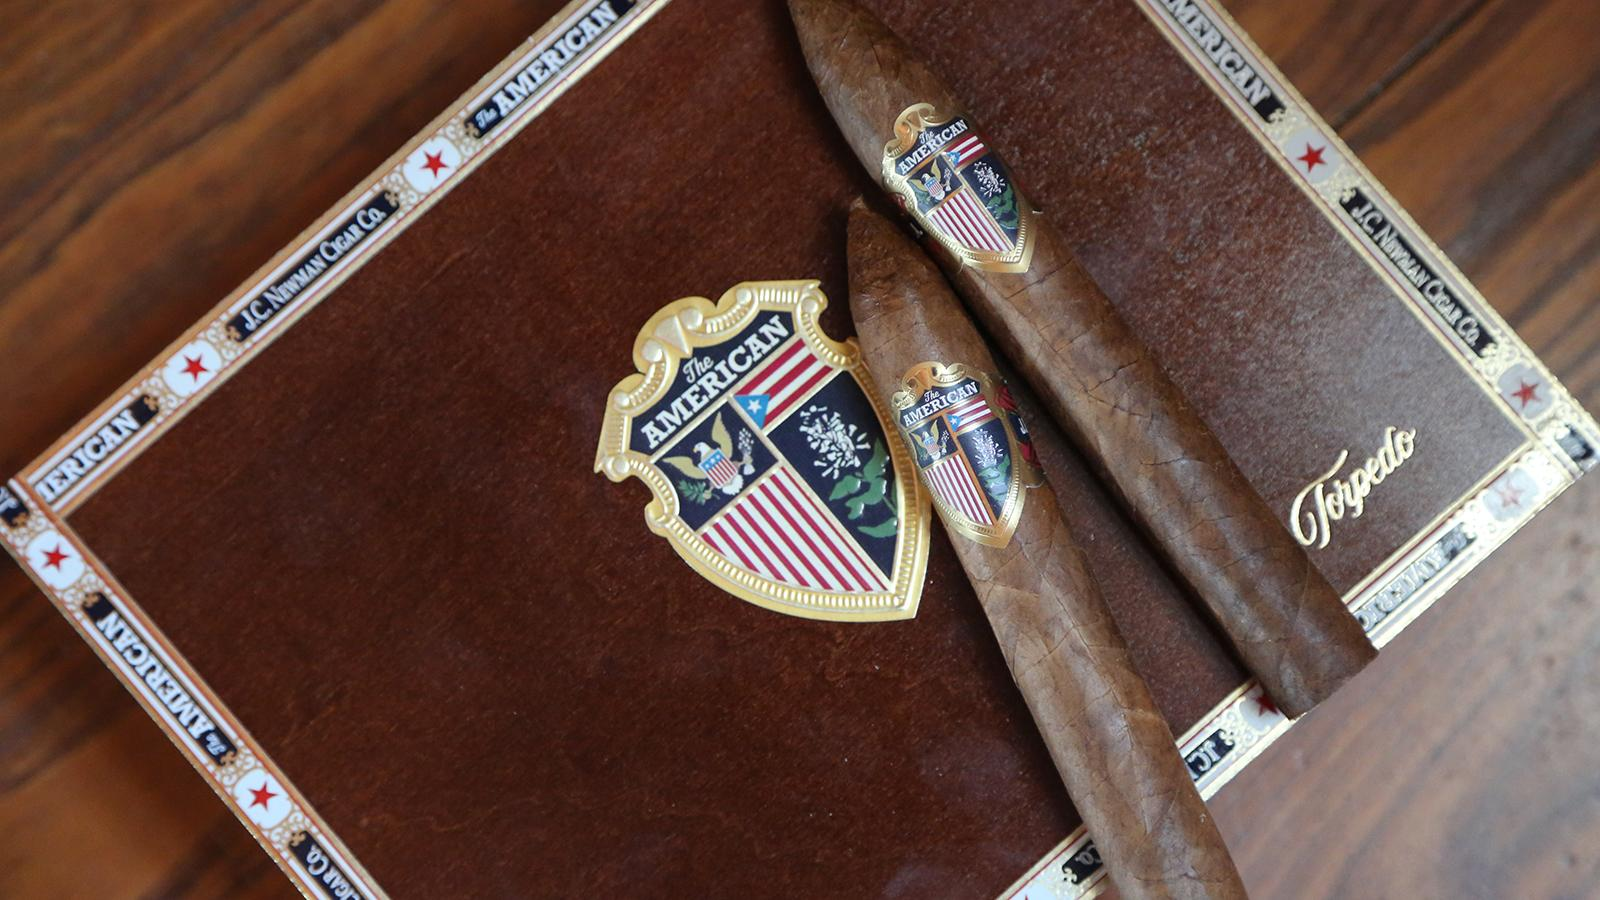 Patriotic Smokes for the Fourth of July